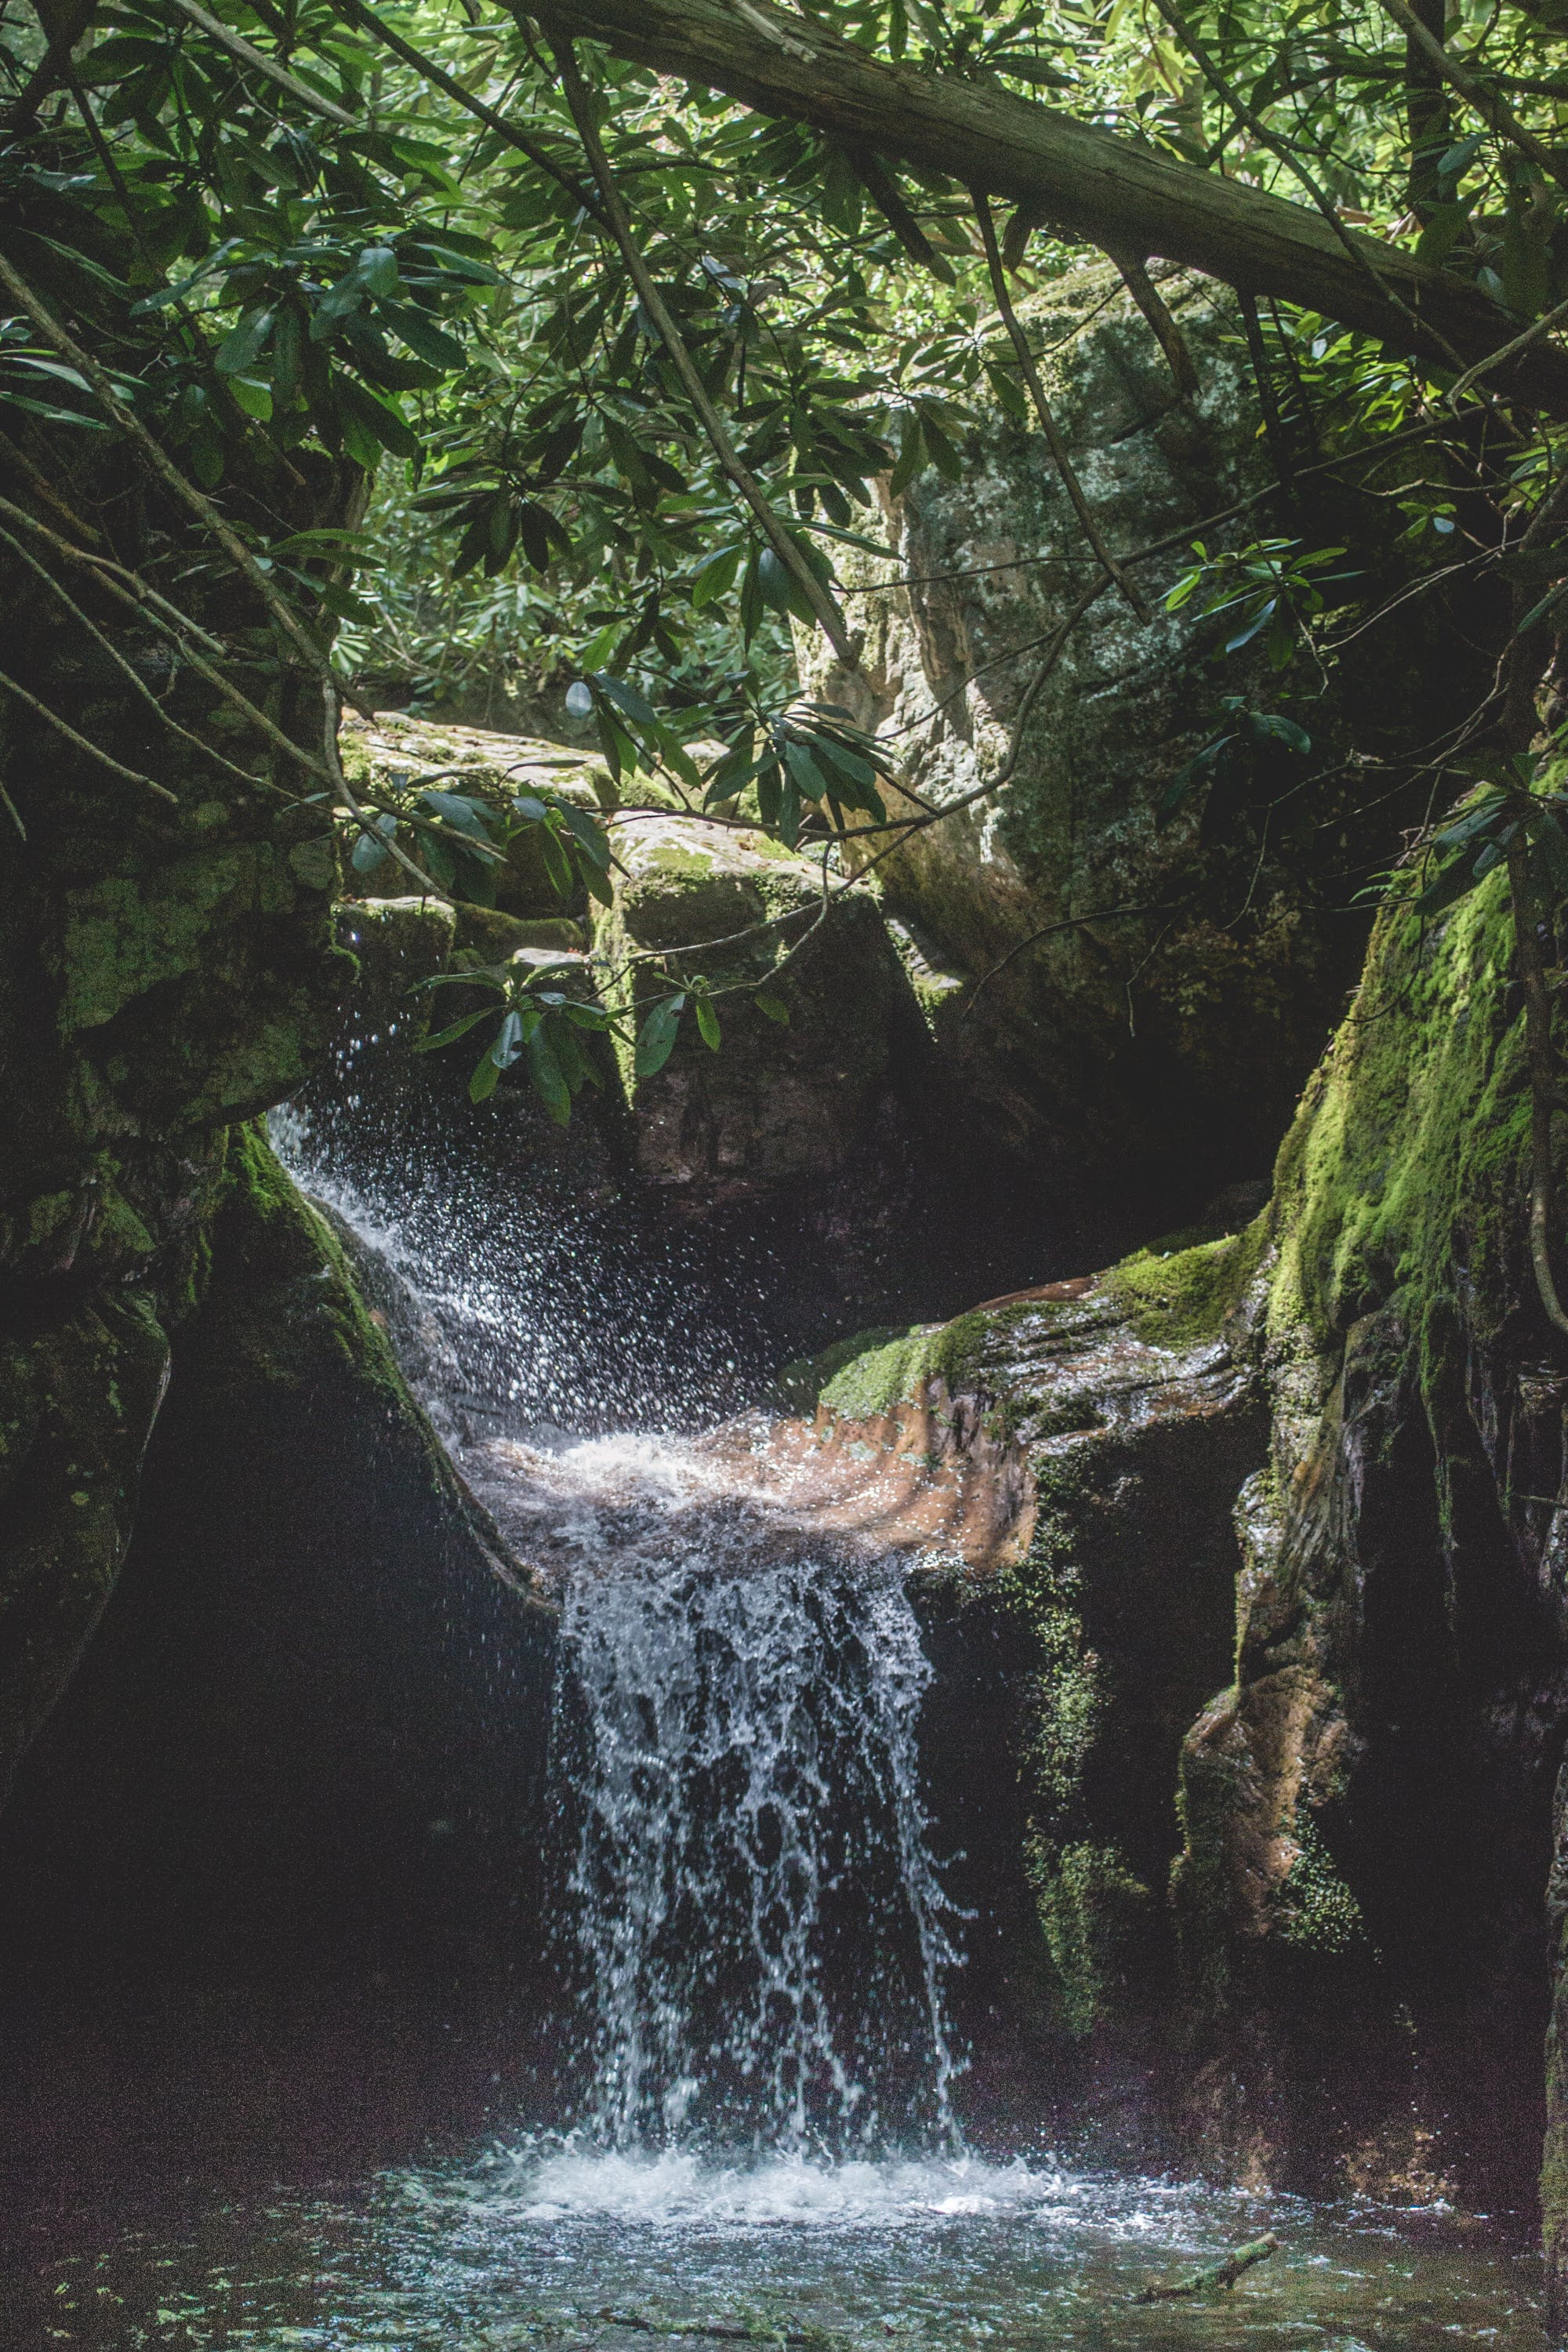 Gratis stockfoto met cascade, h2o, jungle, milieu